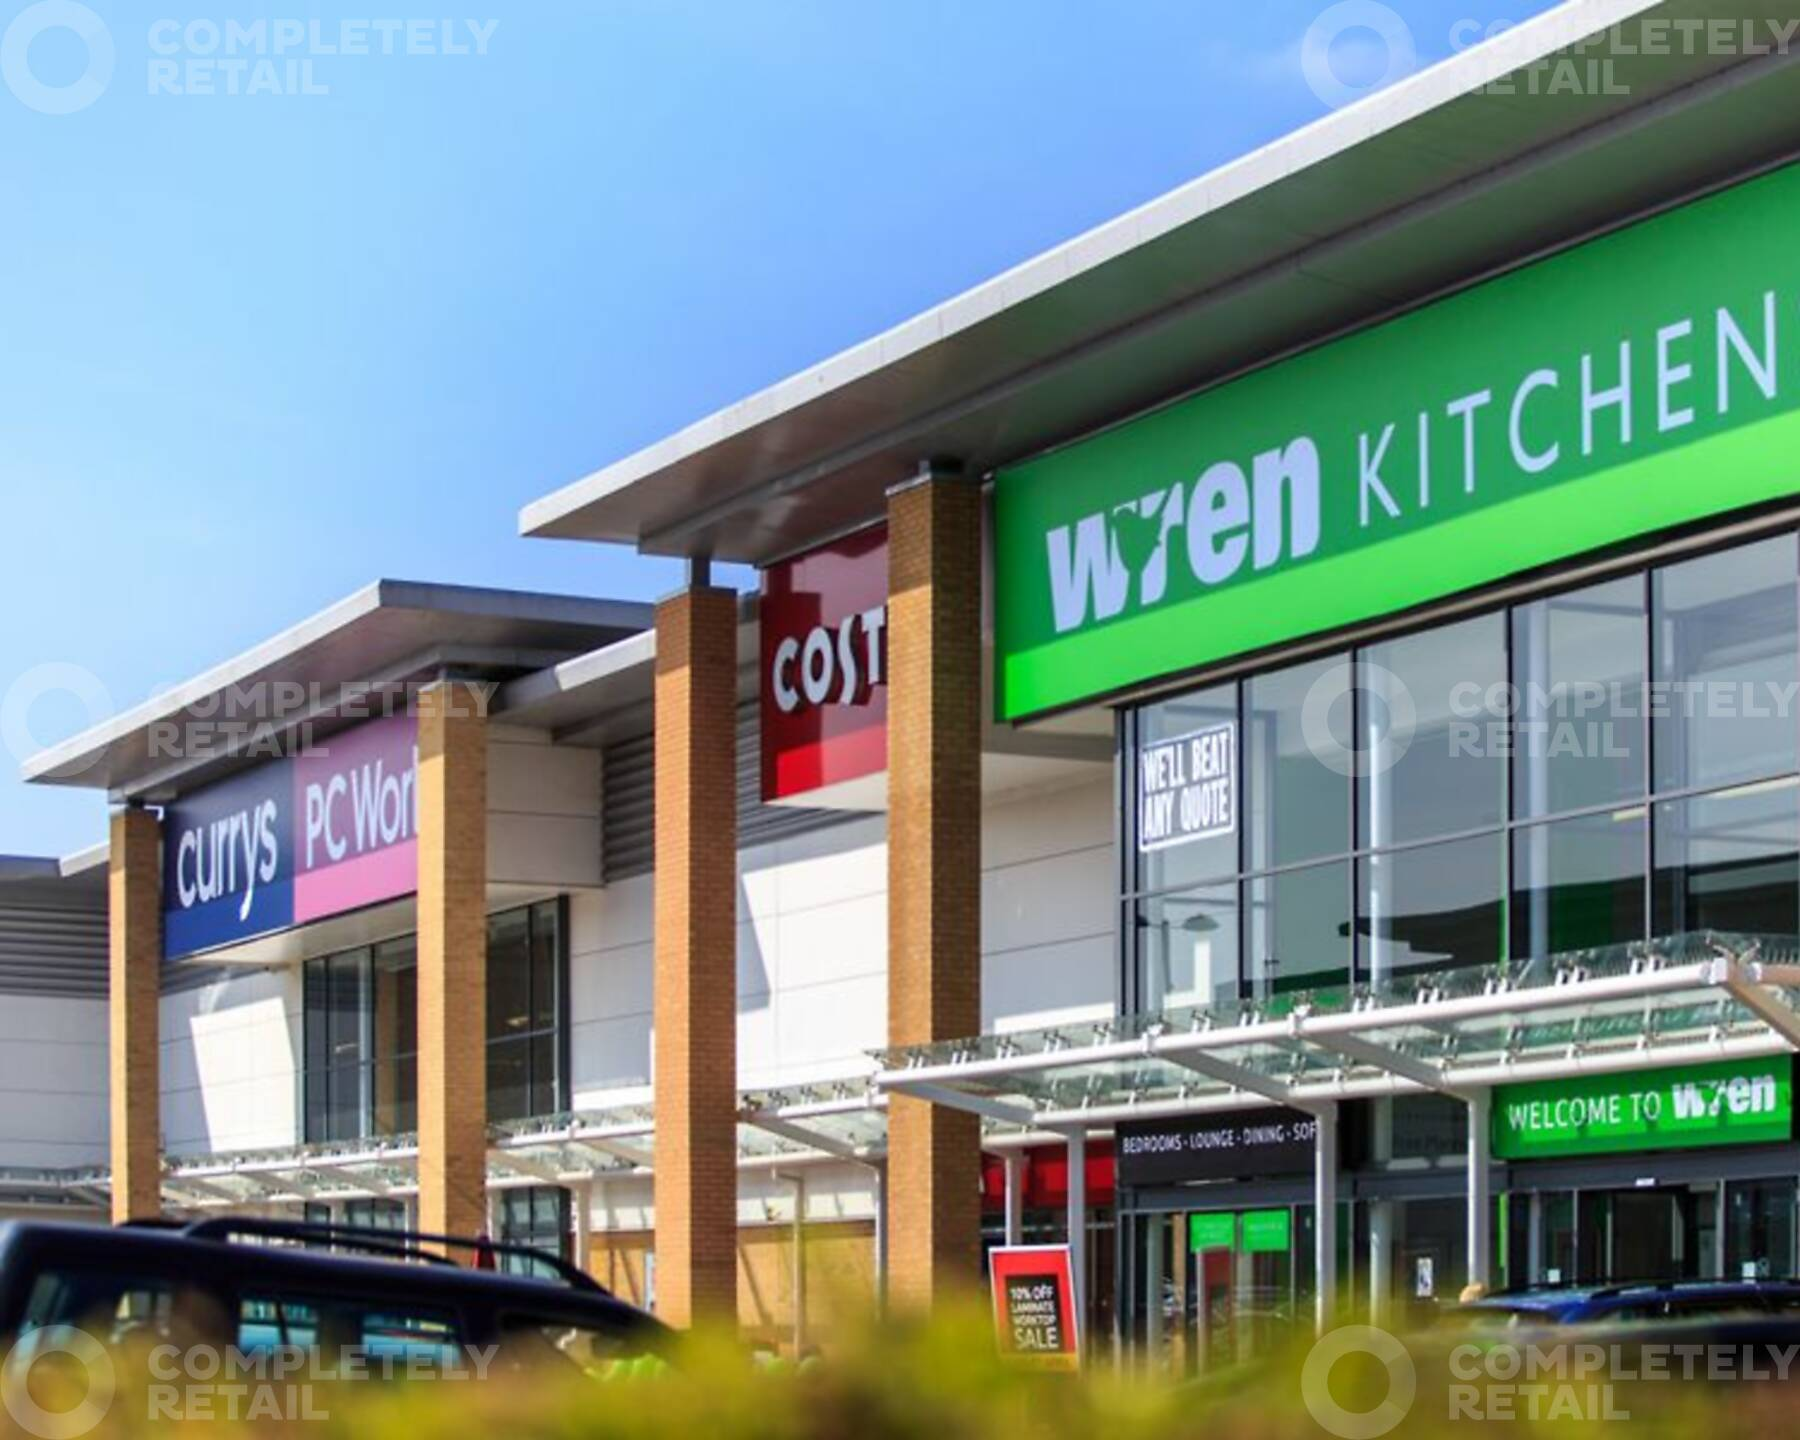 South Aylesford Retail Park